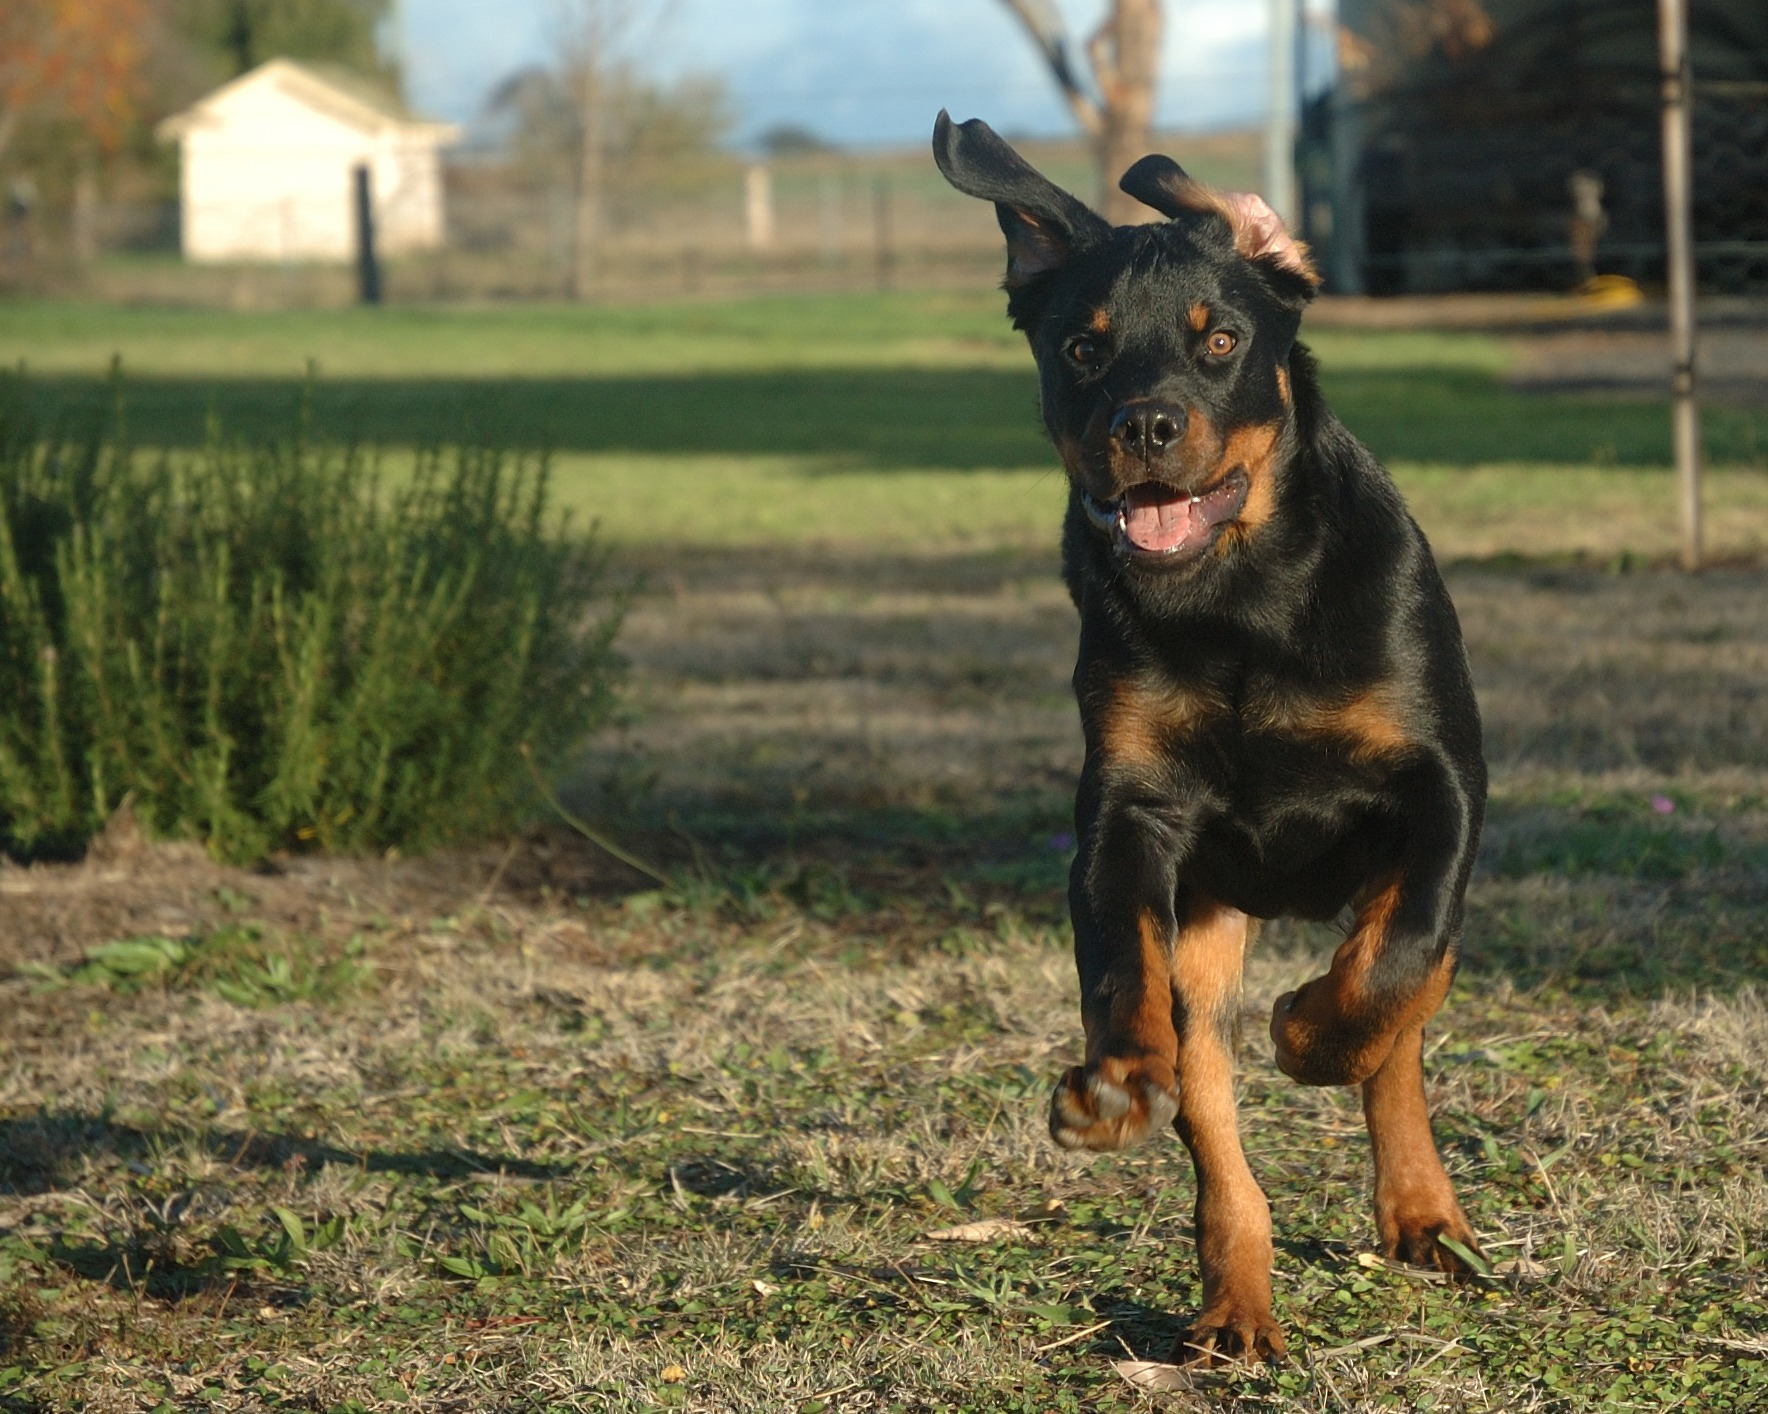 Rottweiler Dog runs in yard